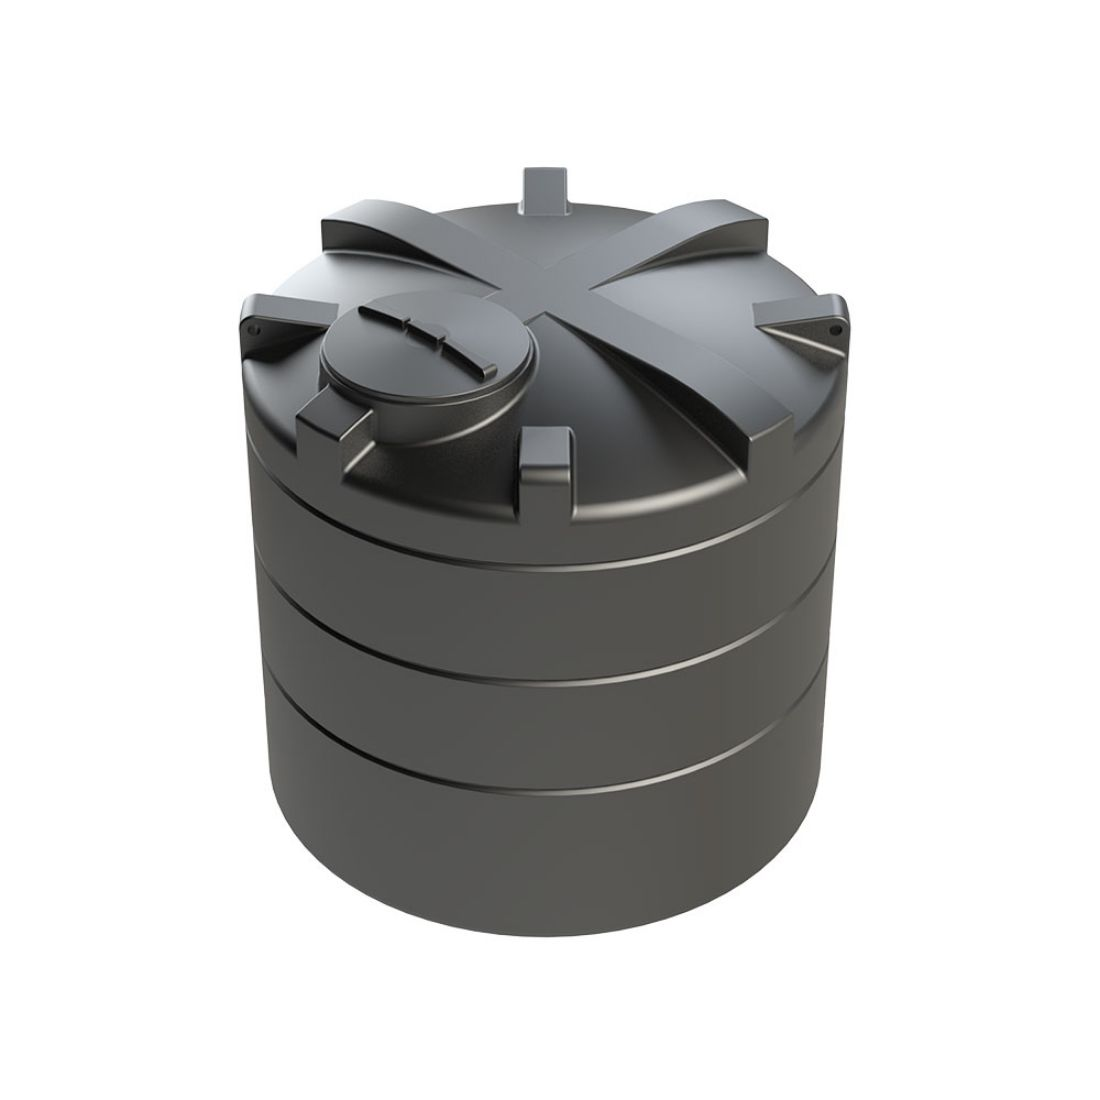 Enduramaxx 4,000 Litre Vertical Potable WRAS Water Storage Tank